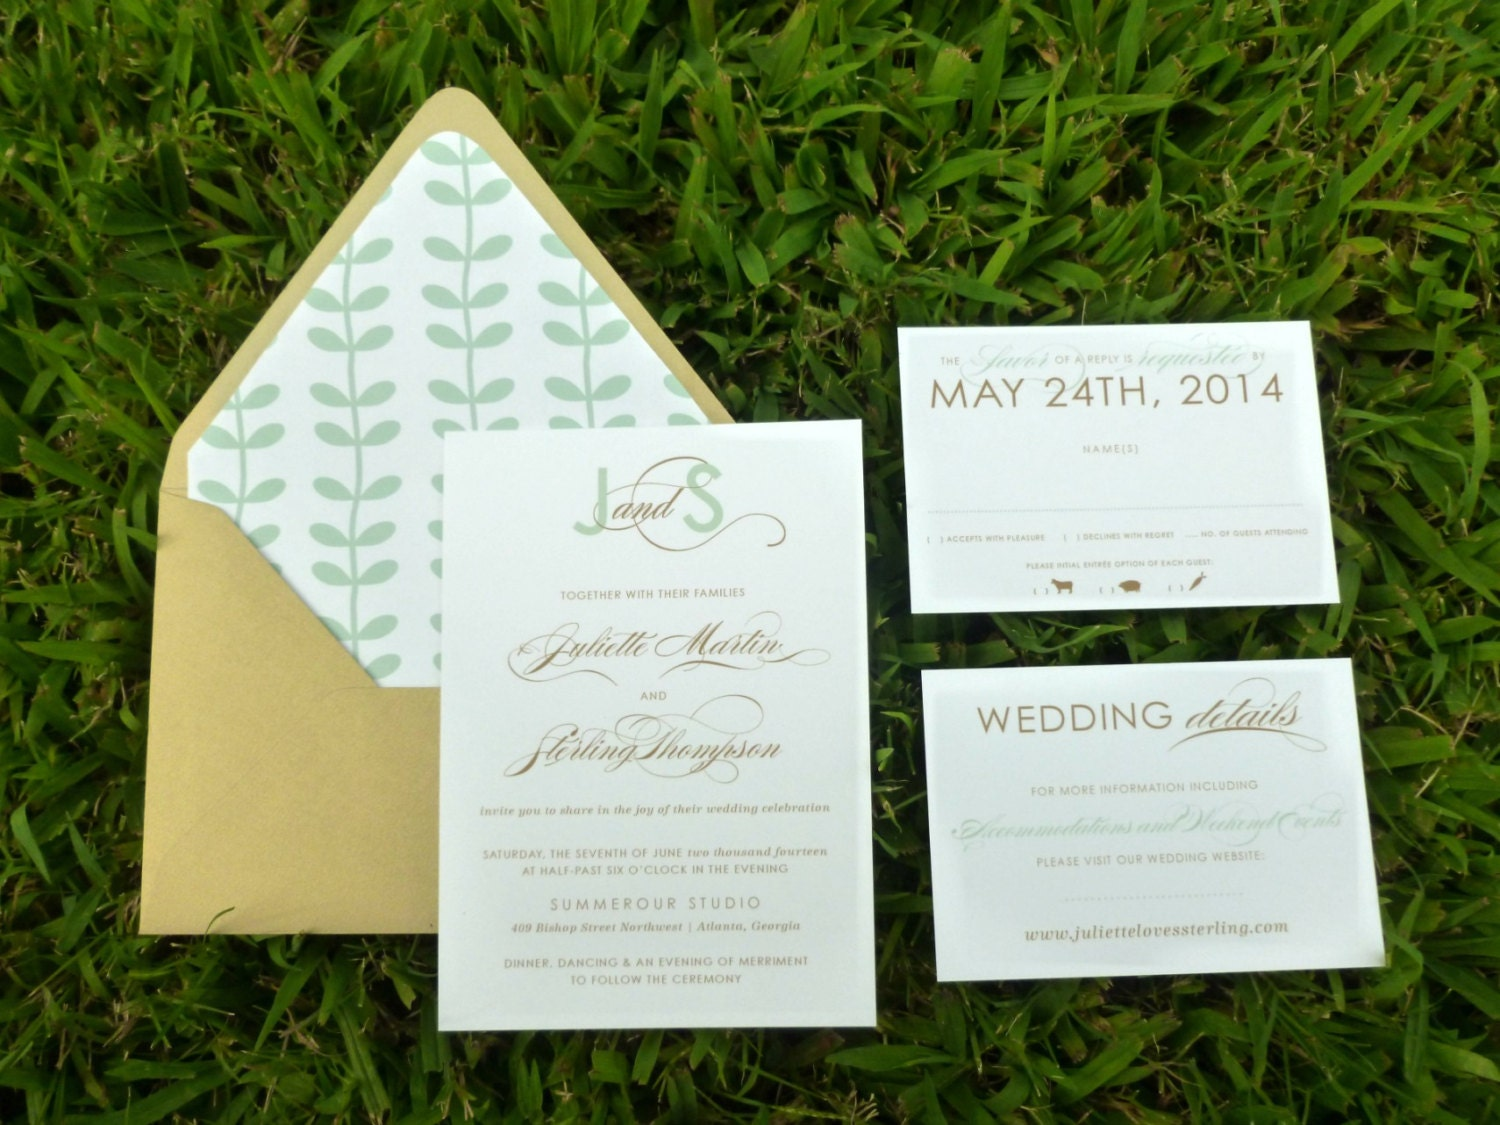 Elegant Monogram Wedding Invitations: Monogram Wedding Invitation Elegant Wedding By DHFitzgerald